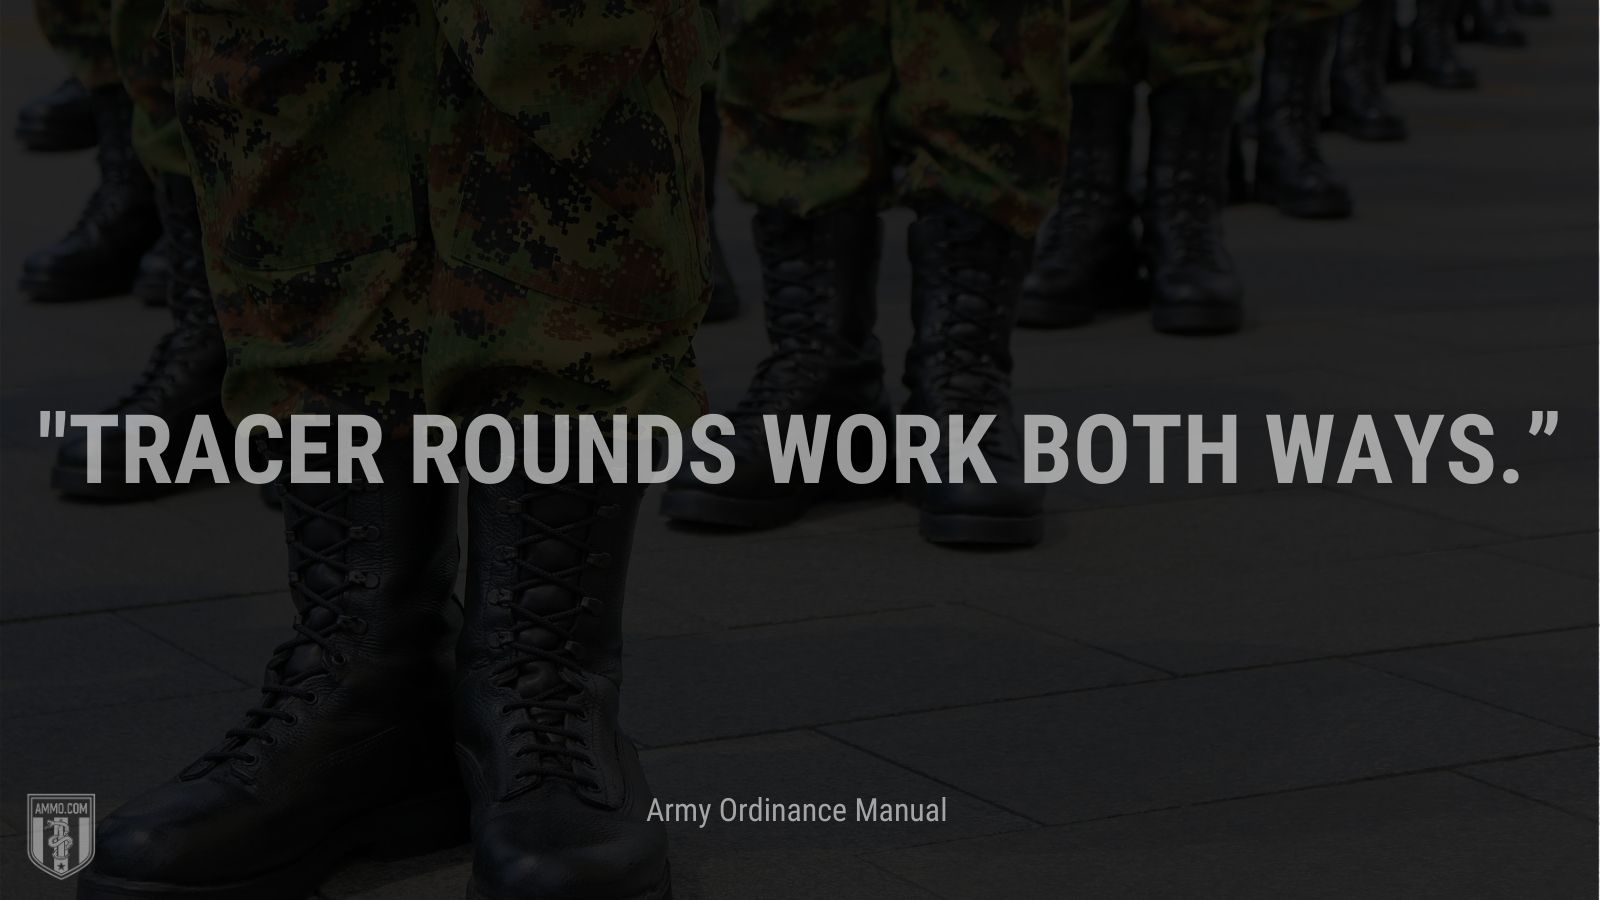 """""""Tracer rounds work both ways."""" - Army Ordinance Manual"""